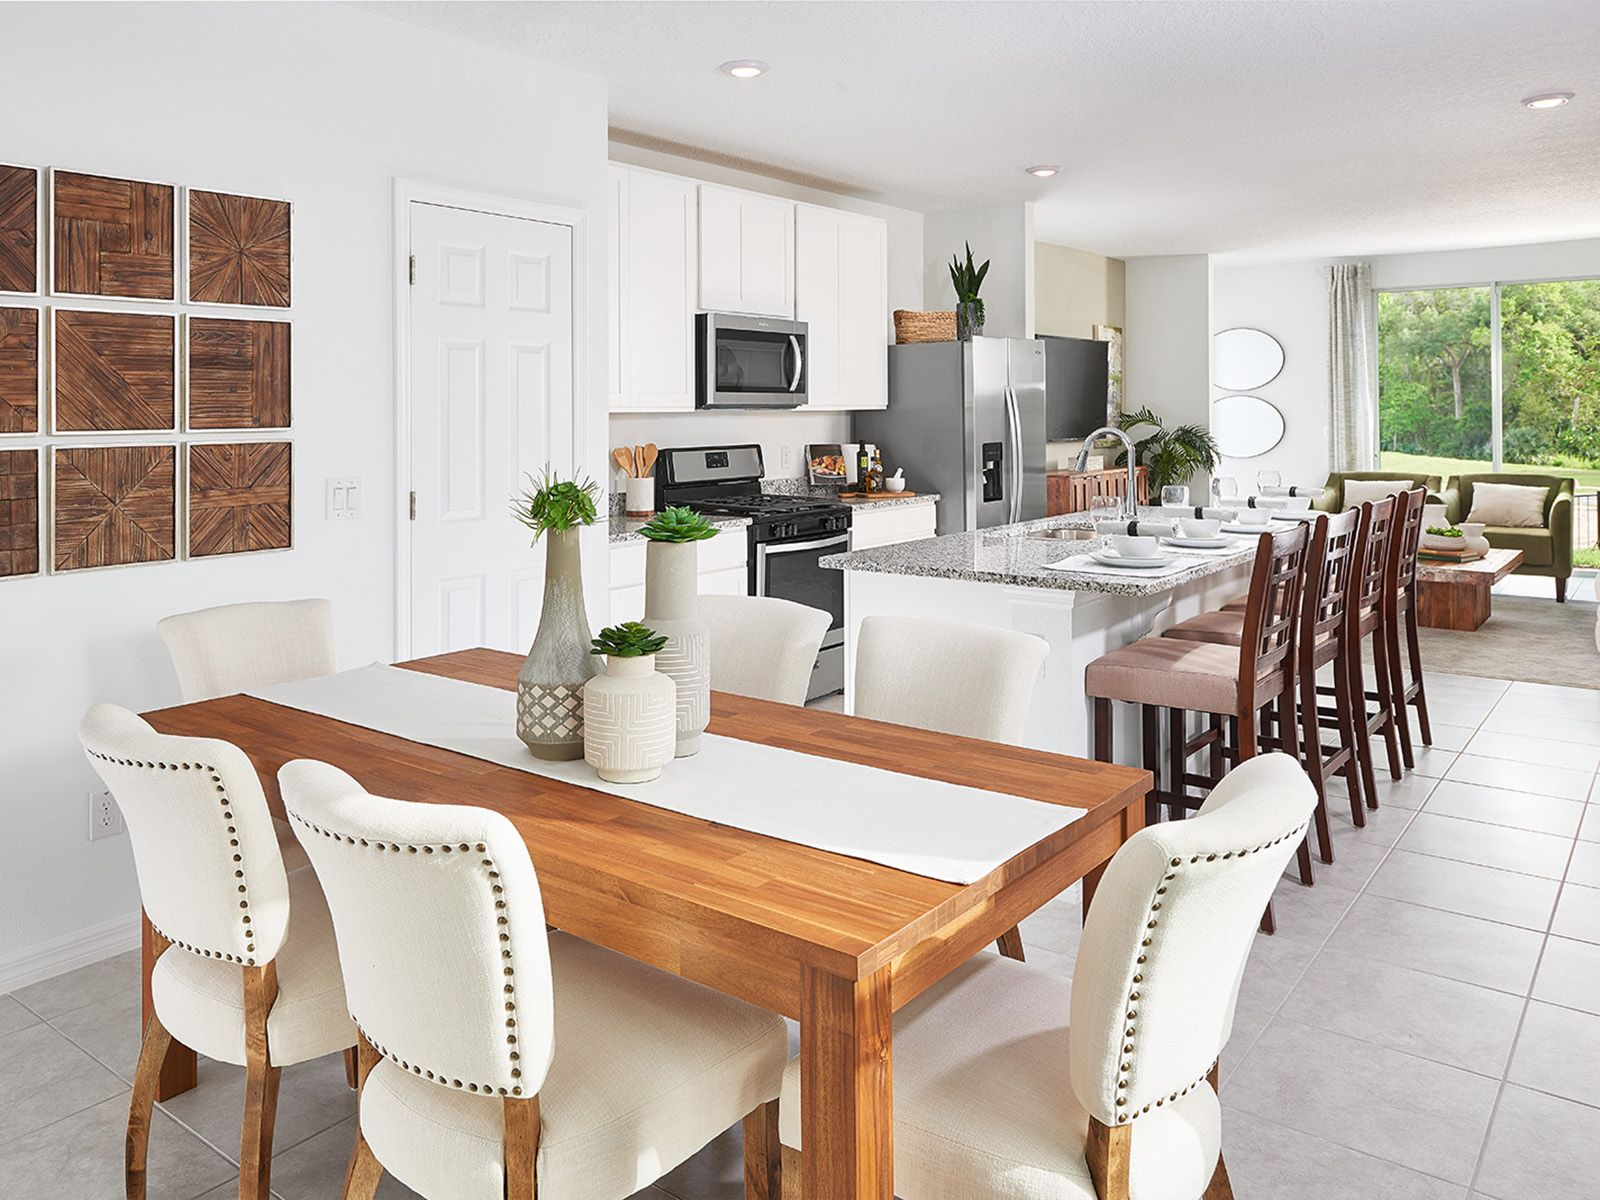 The dining and kitchen of the Canary as modeled at Lake Denham Estates